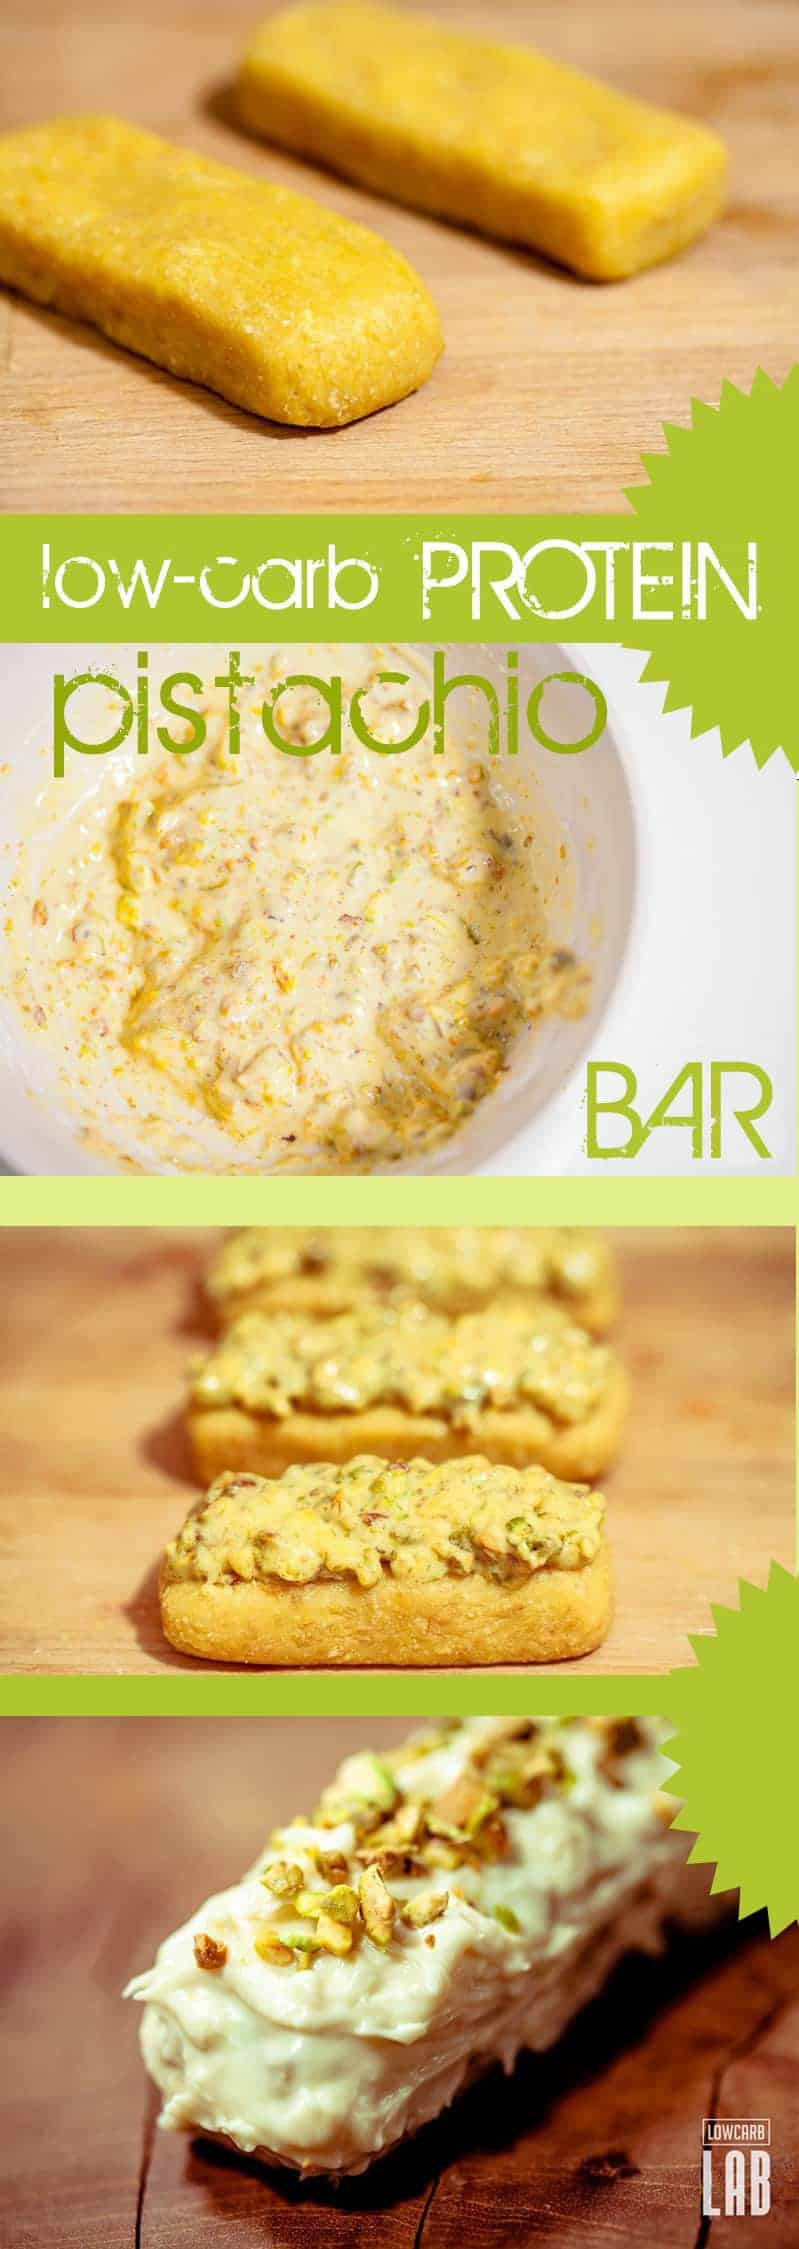 Low-Carb Protein Pistachio Bar